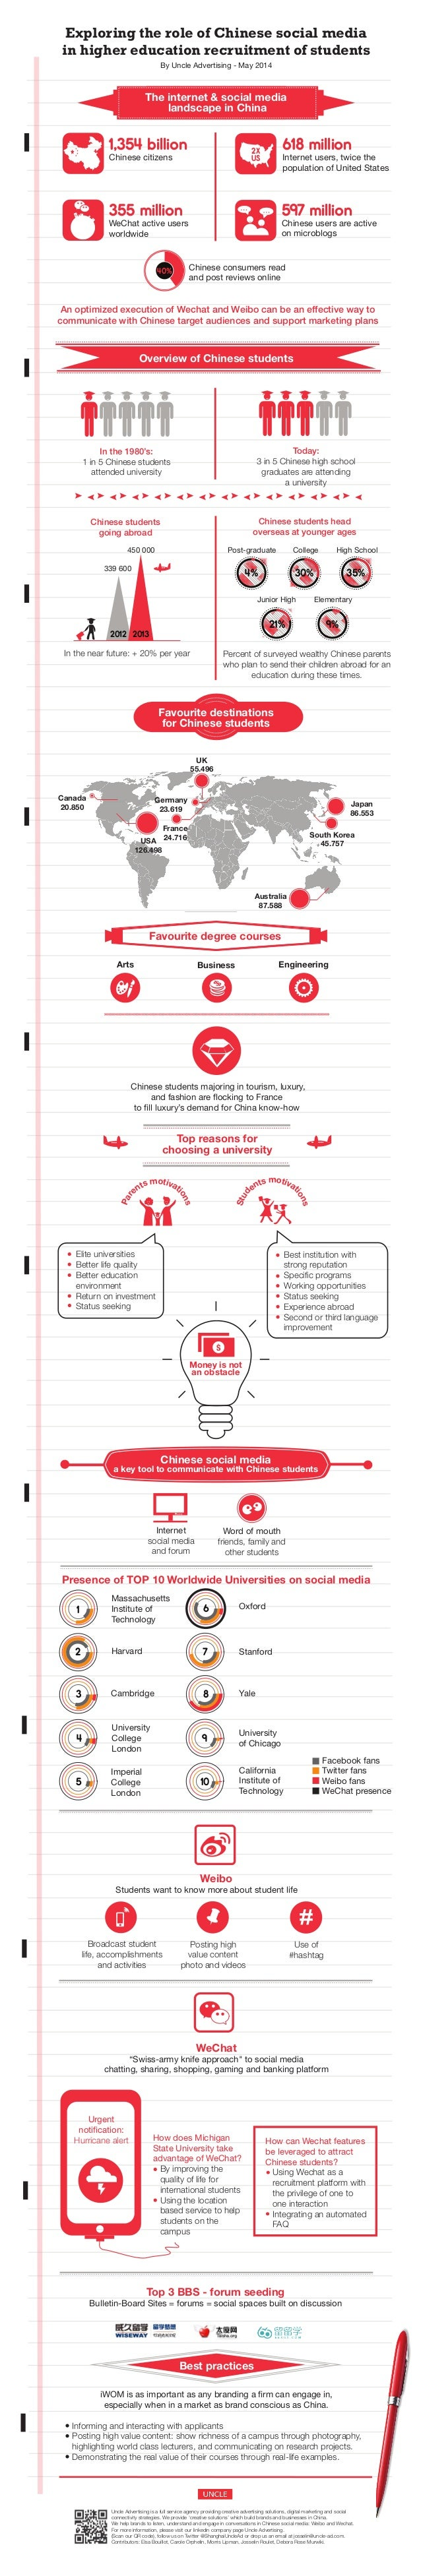 INFOGRAPHIC | Exploring the role of Chinese social media in higher education recruitment of students